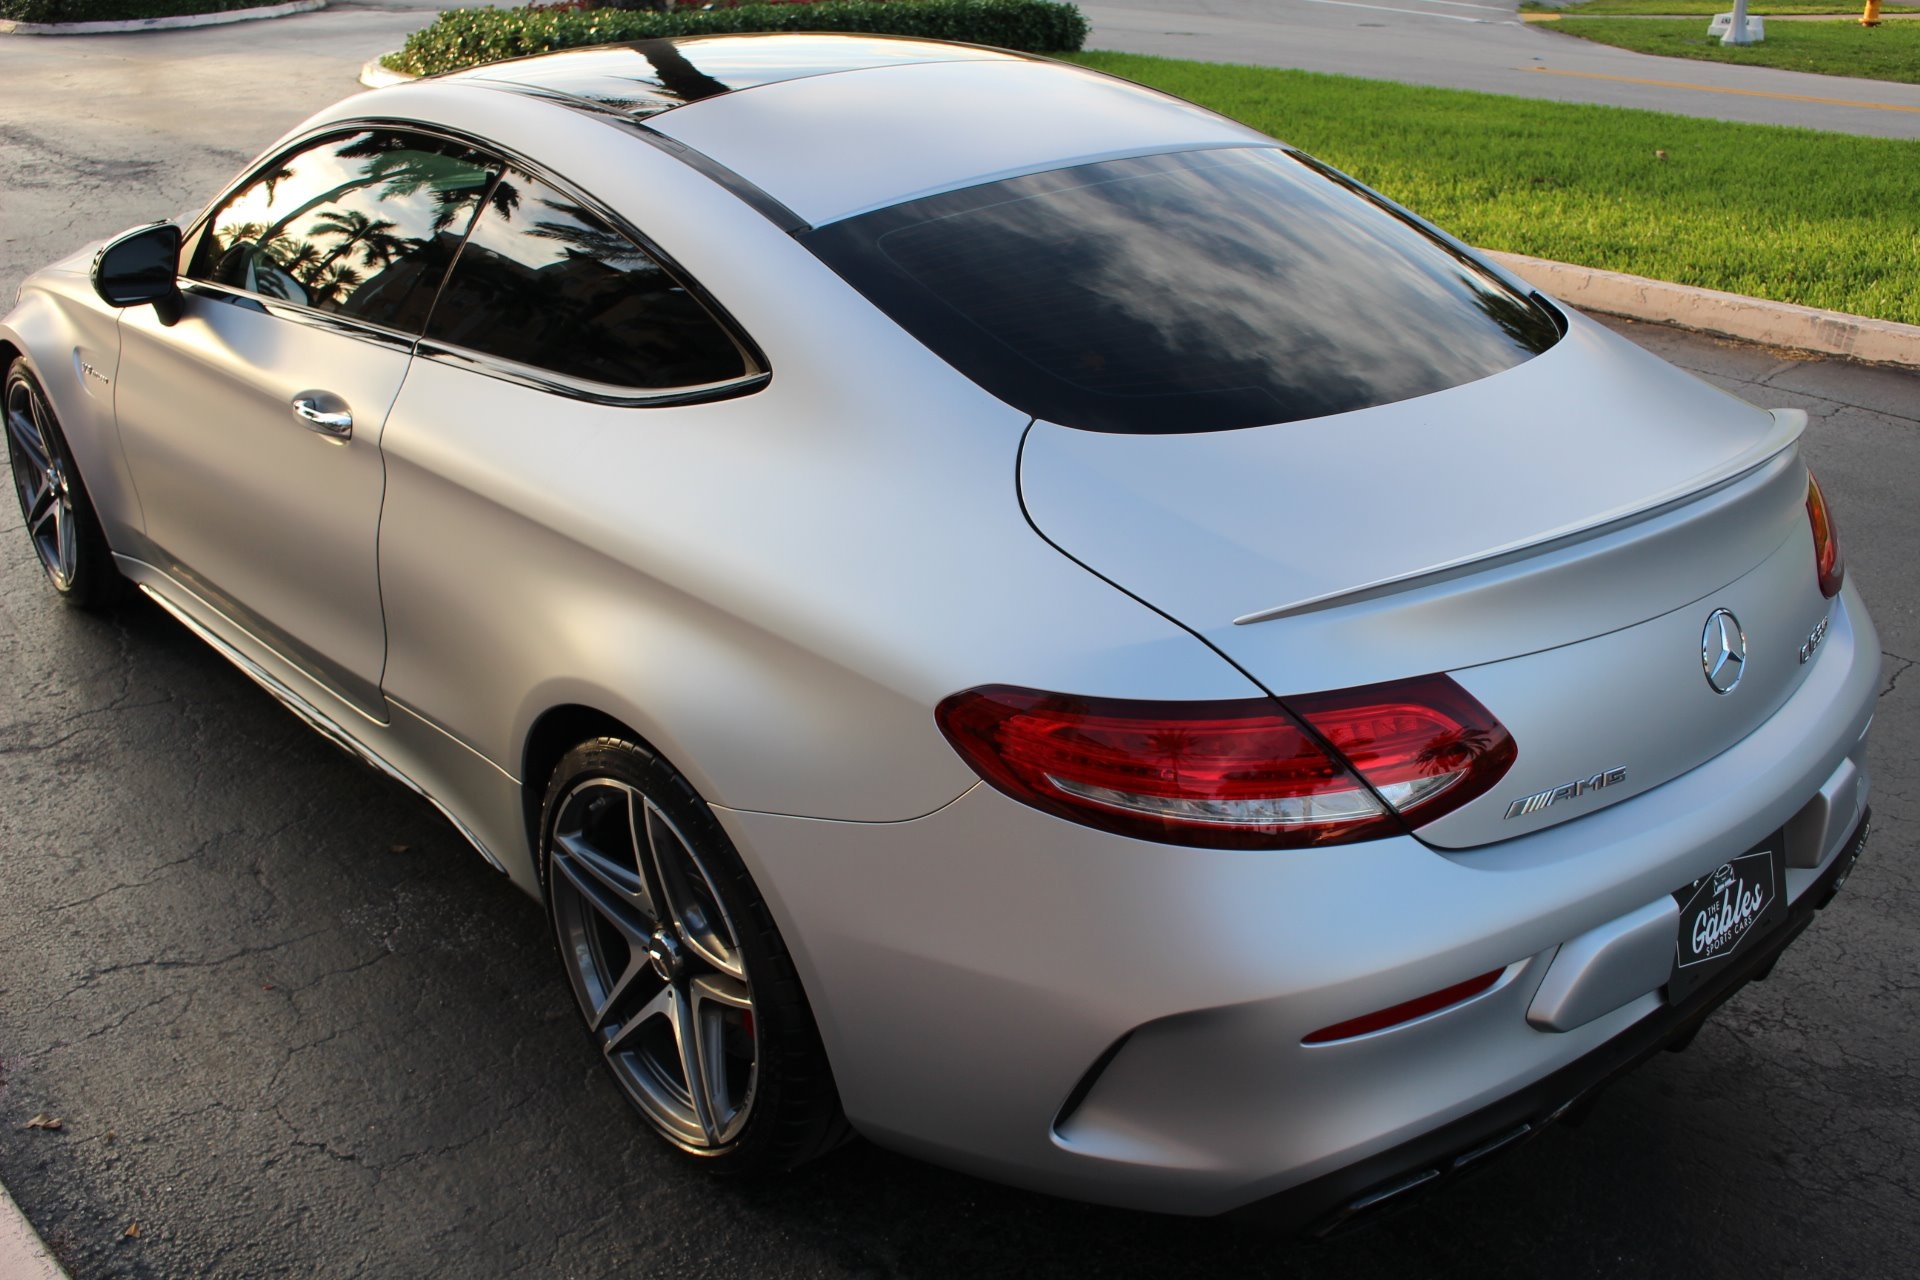 Used 2018 Mercedes-Benz C-Class AMG C 63 S for sale Sold at The Gables Sports Cars in Miami FL 33146 4